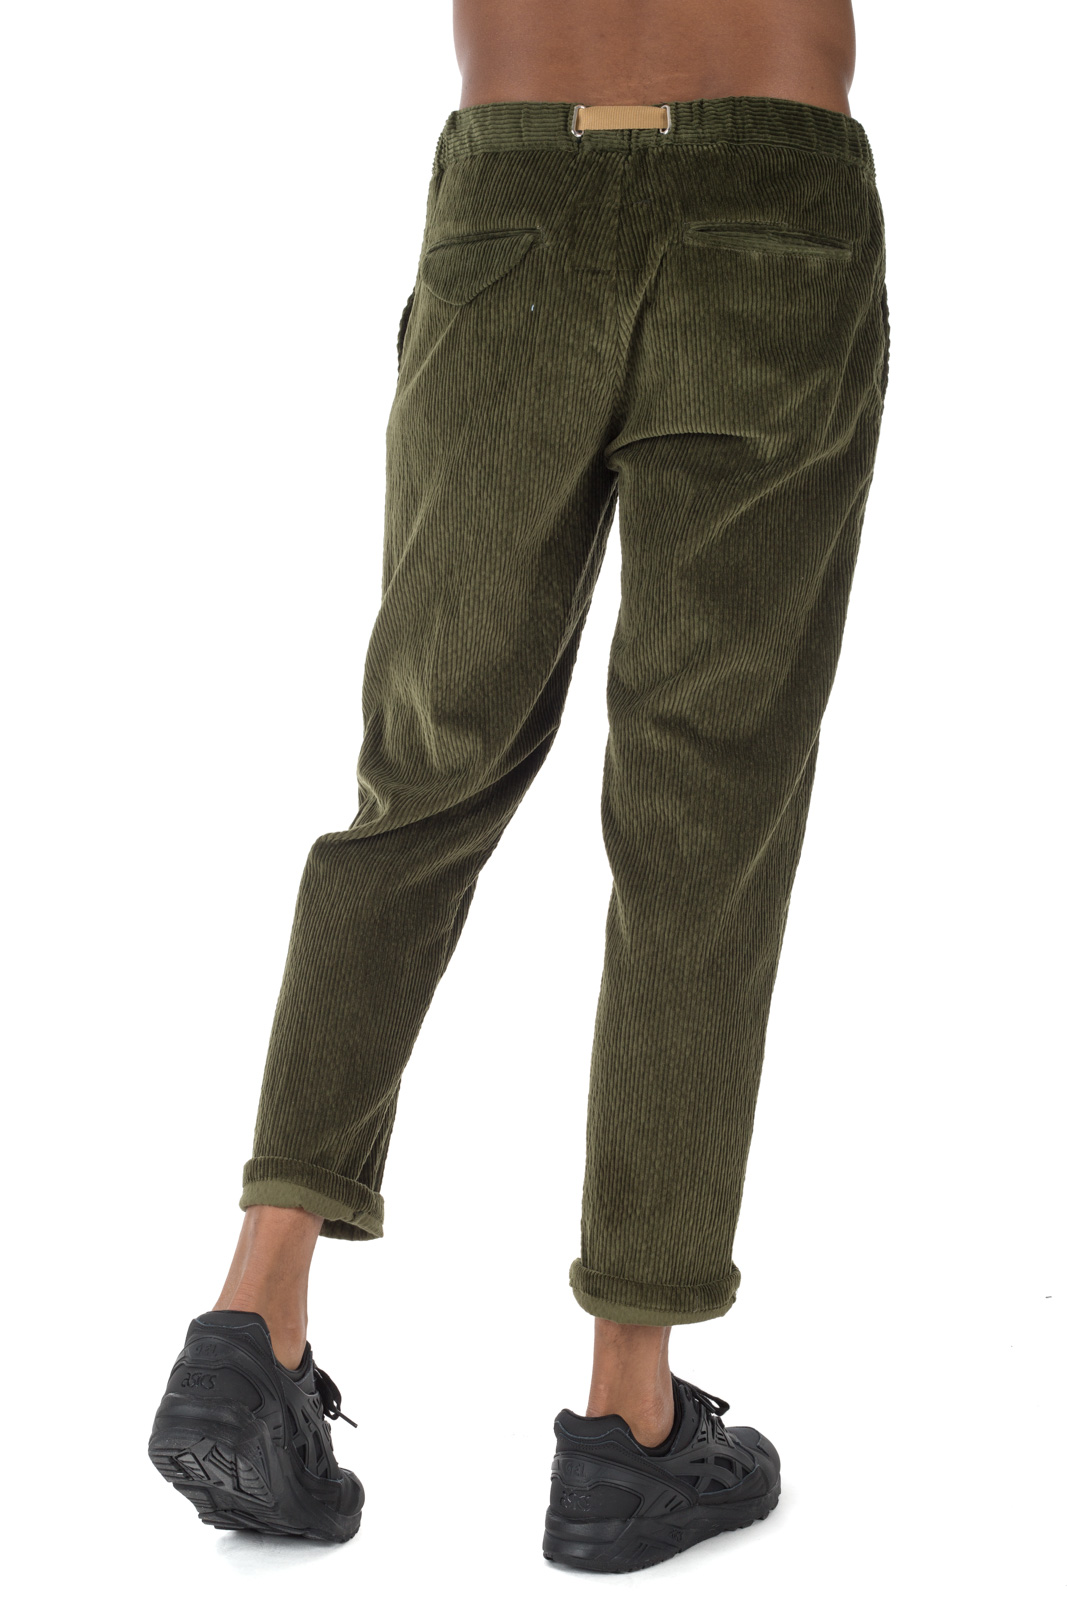 White Sand - Chino Velvet Green Trousers